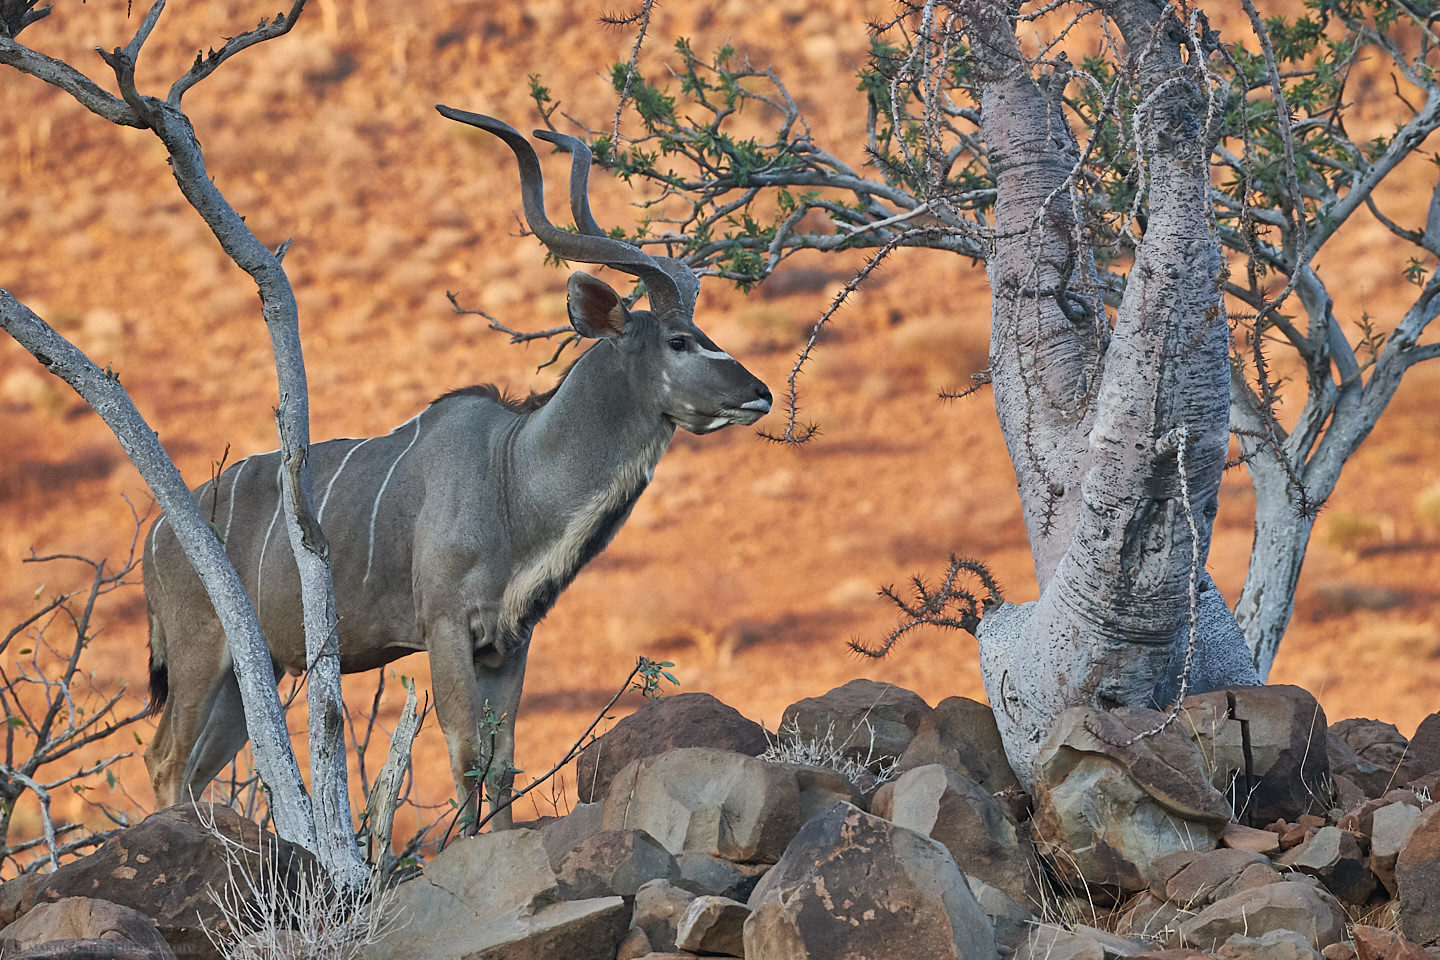 Greater Kudu with Bottle Tree